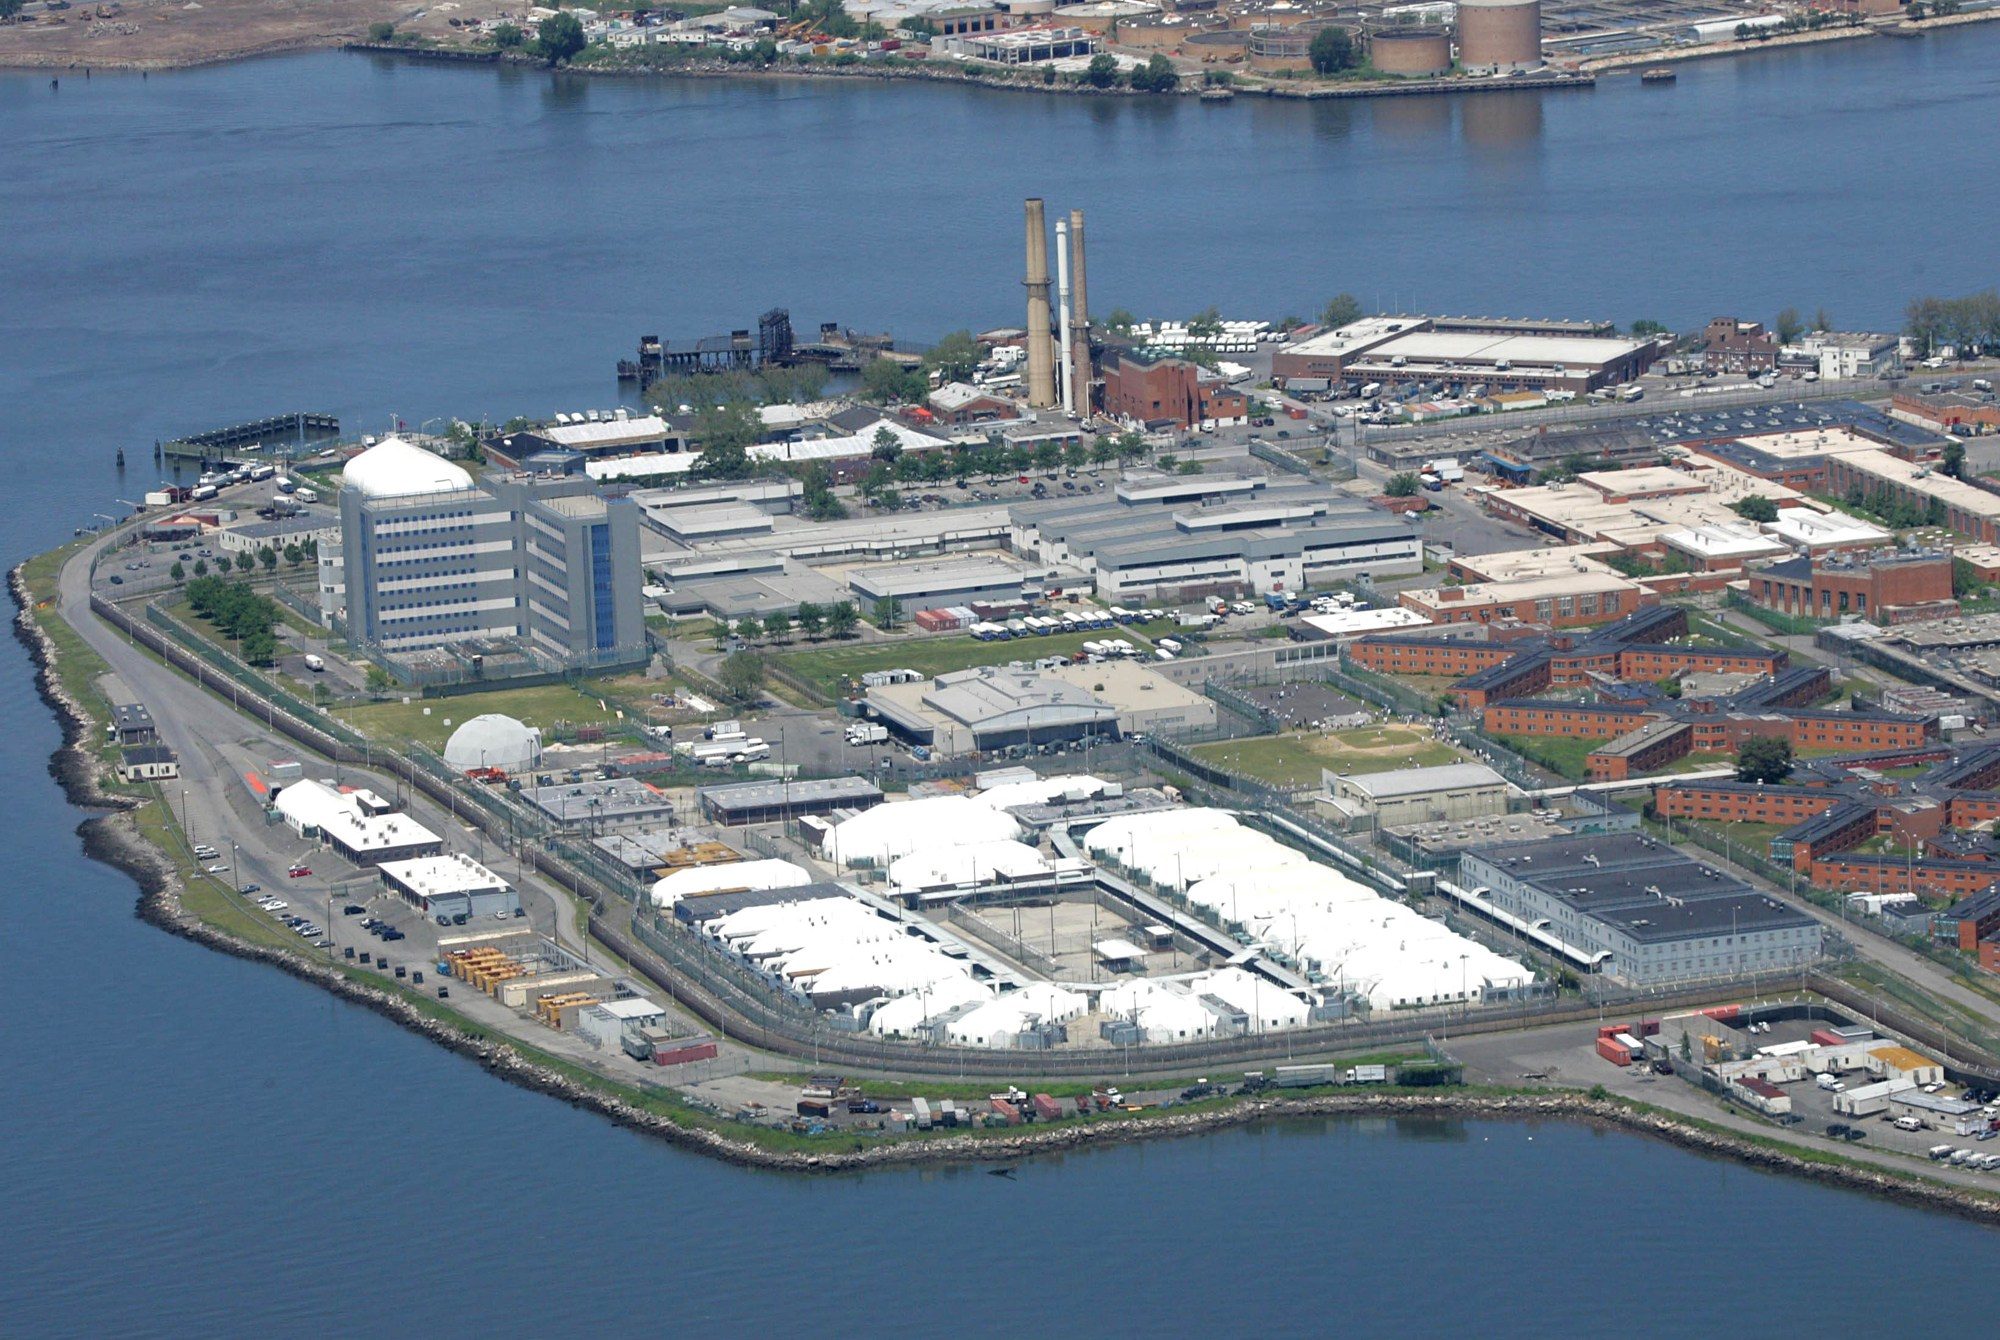 May 20, 2011: An aerial view of the Rikers Island Jail Complex in New York City. Pictured here on June 4, 2005. Credit : INFphoto.com Ref.: infusny-01/31